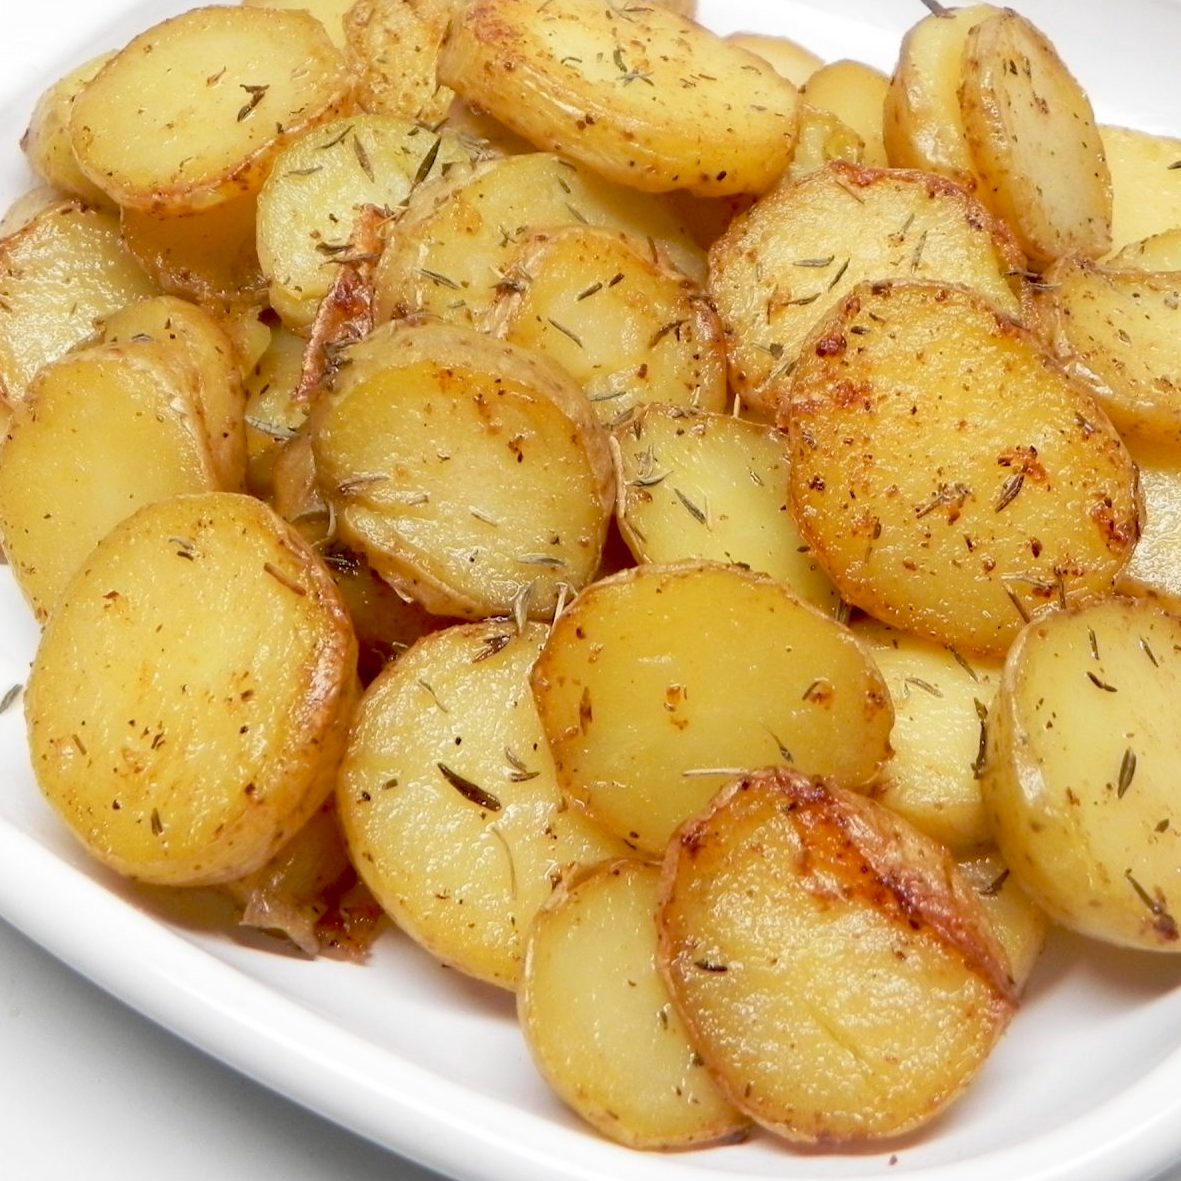 roasted potatoes on white dinnerware